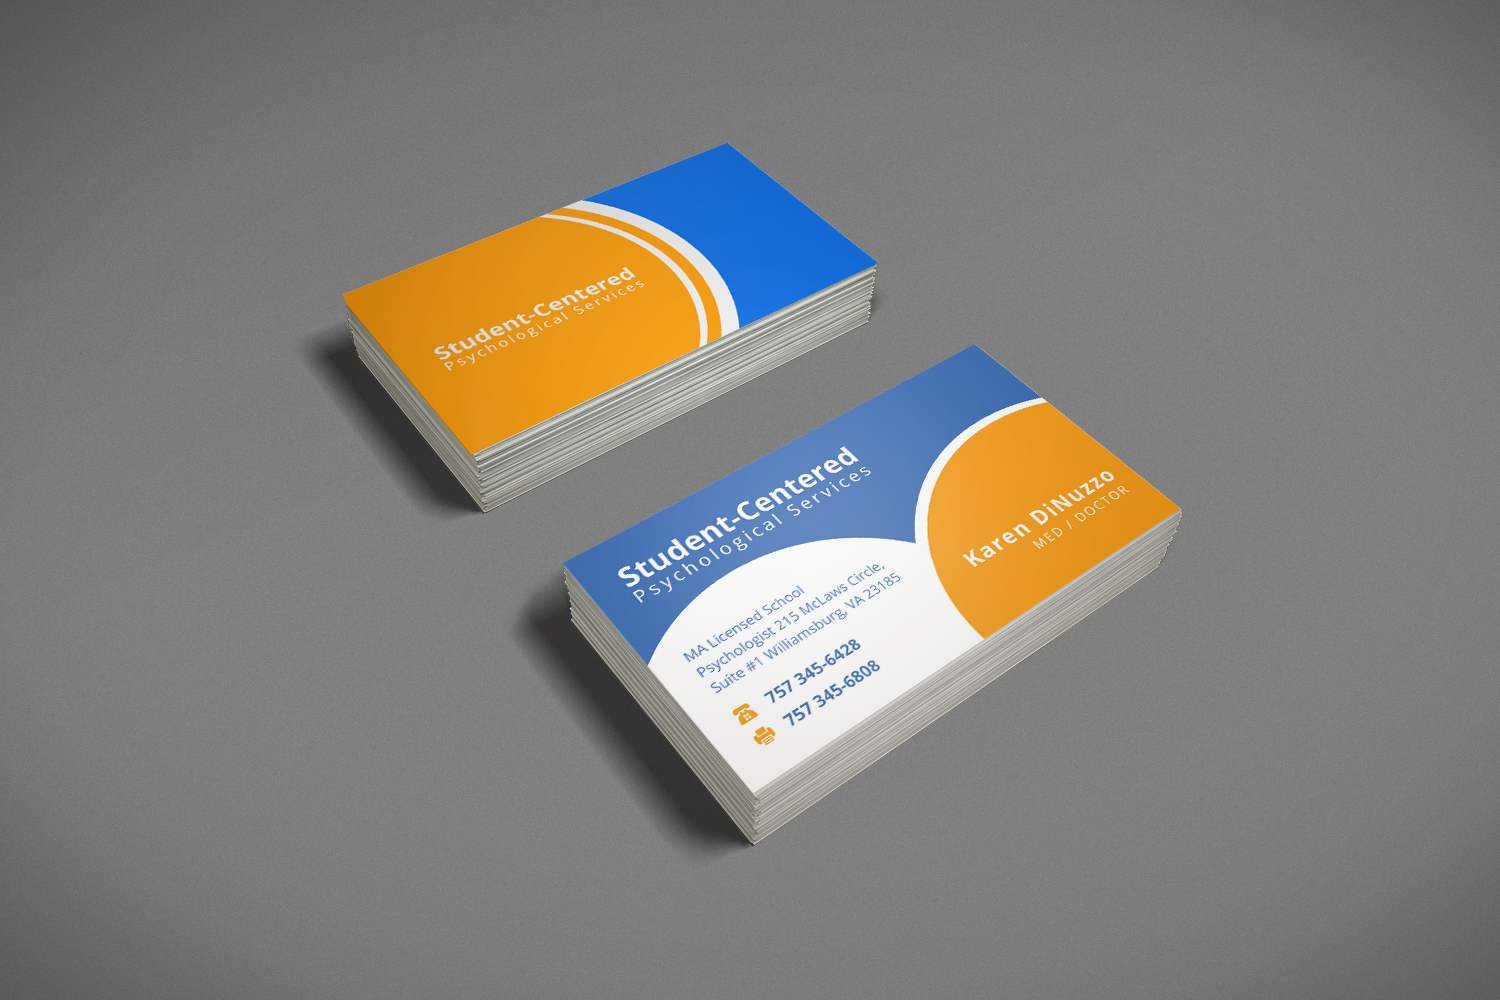 Business Business Card Design for a Company by Luchyan | Design #6310901